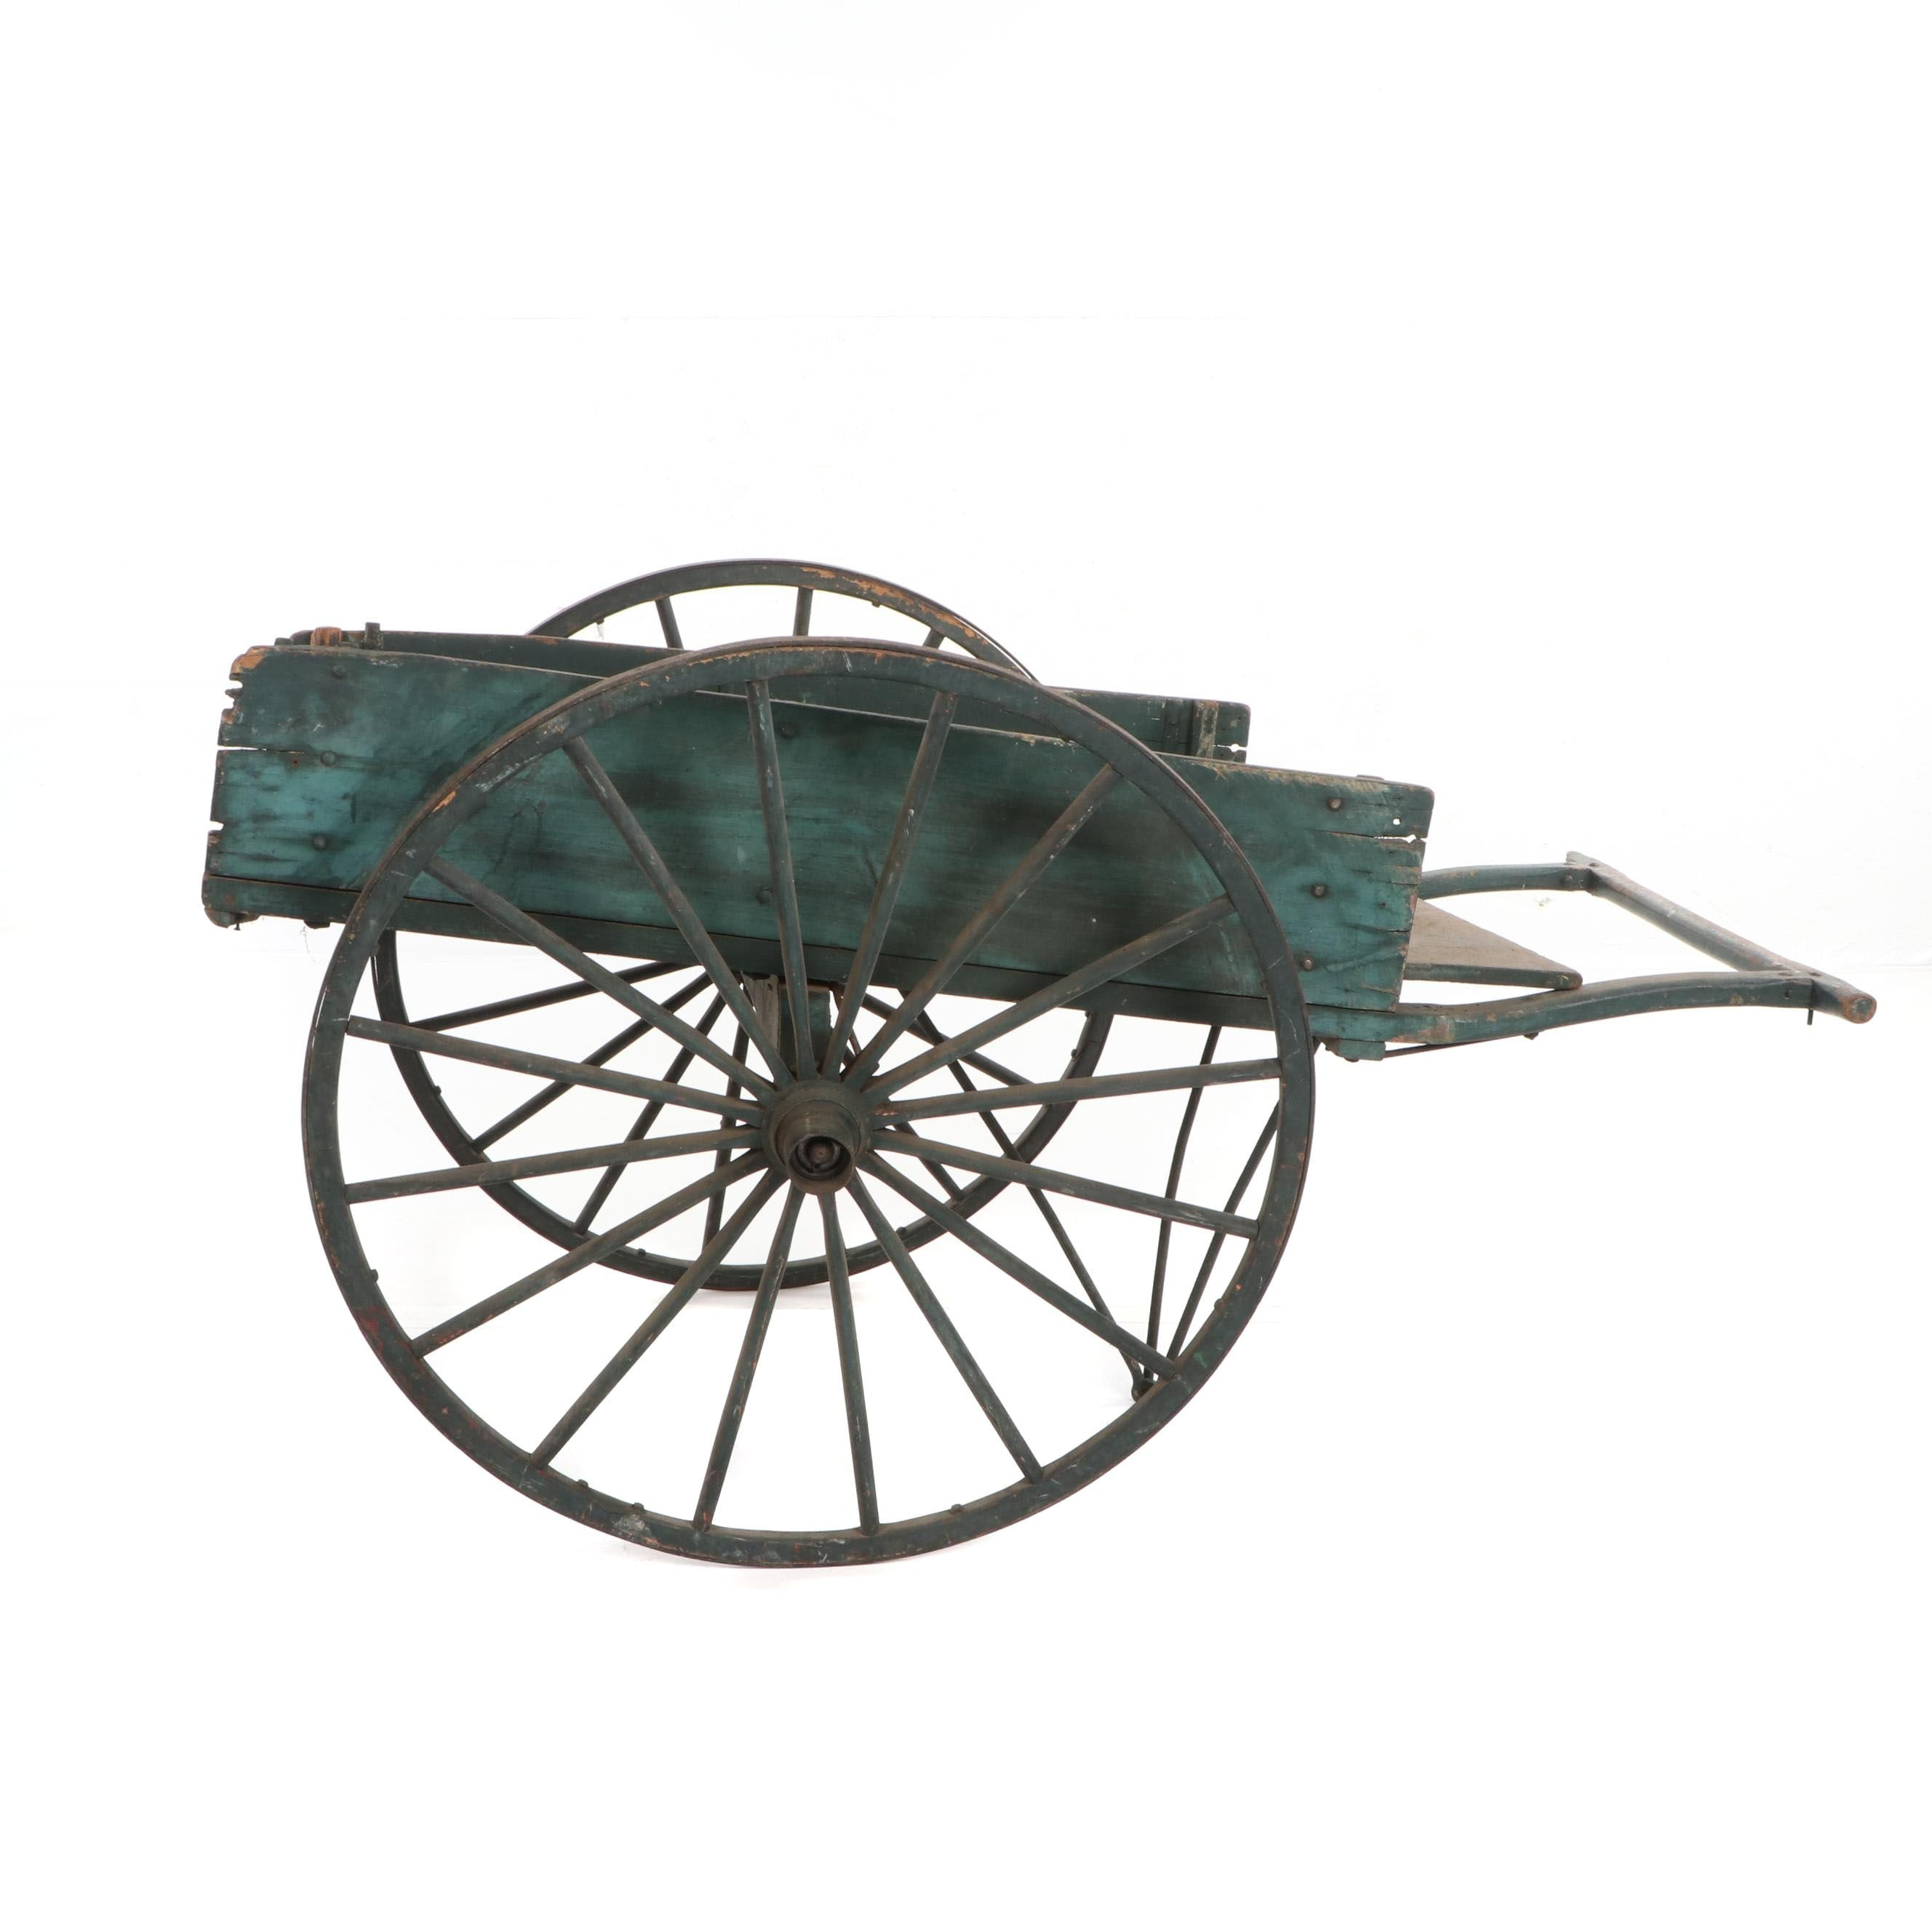 Two-Wheeled Cart, Late 19th/ Early 20th Century